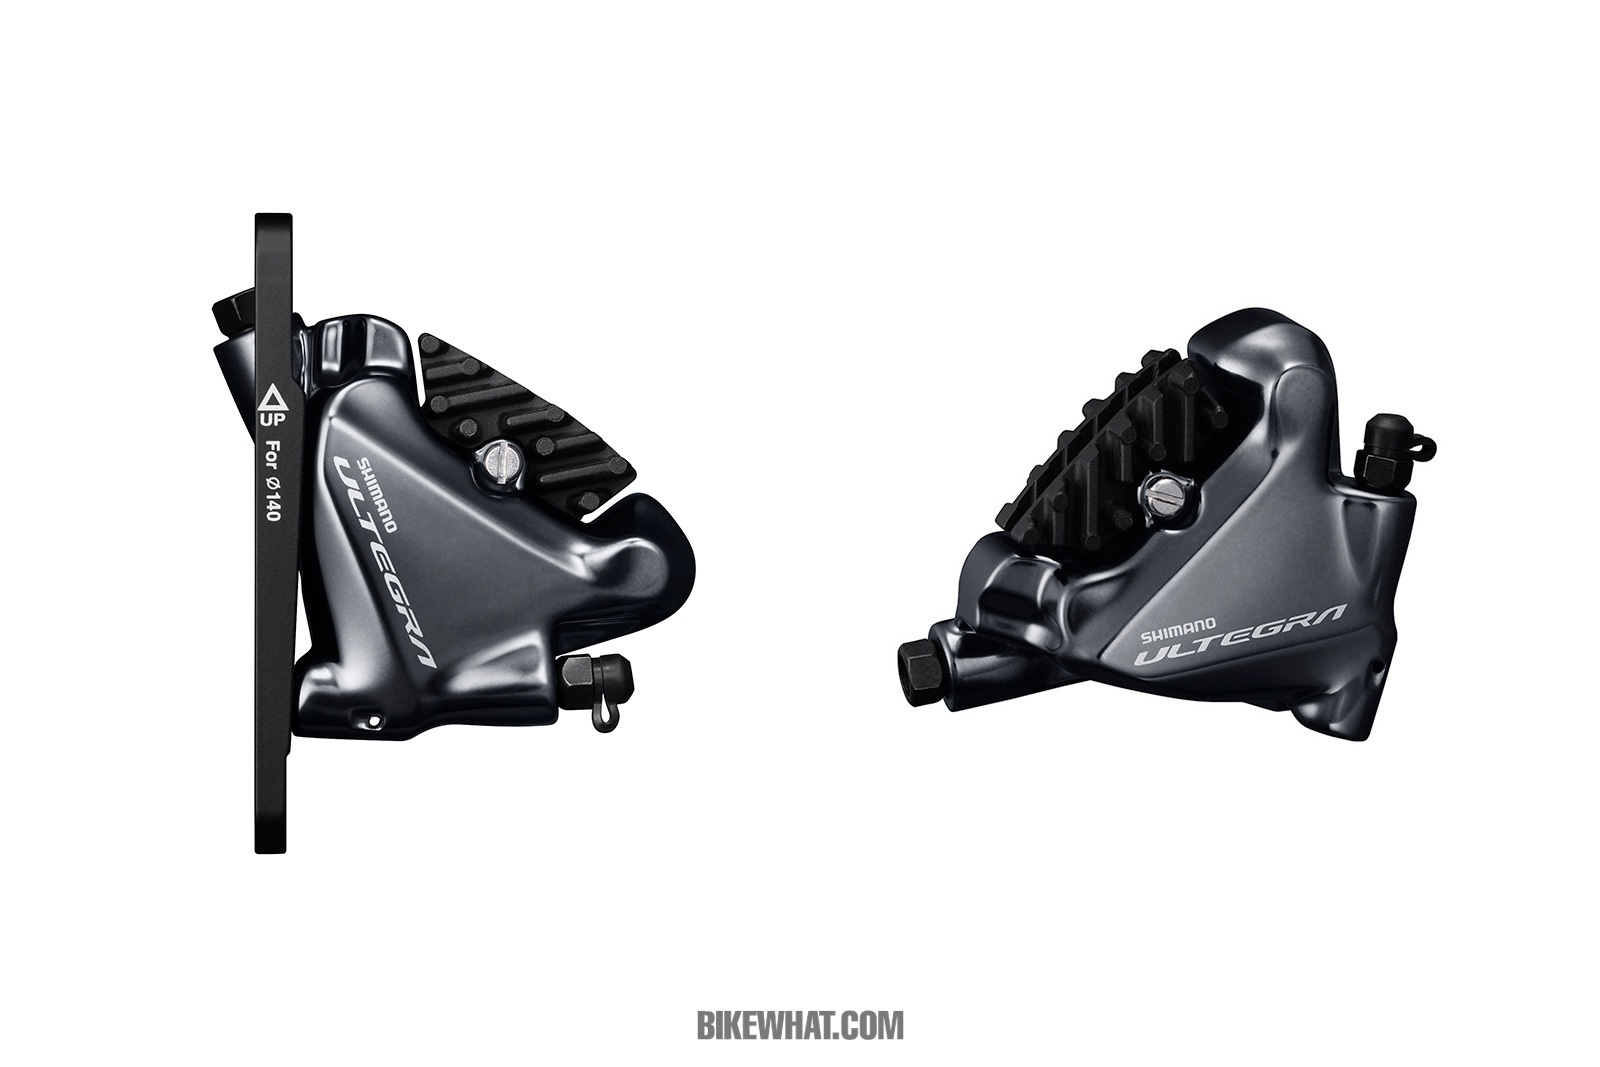 preview_Ultegra_R8000_cal.jpg